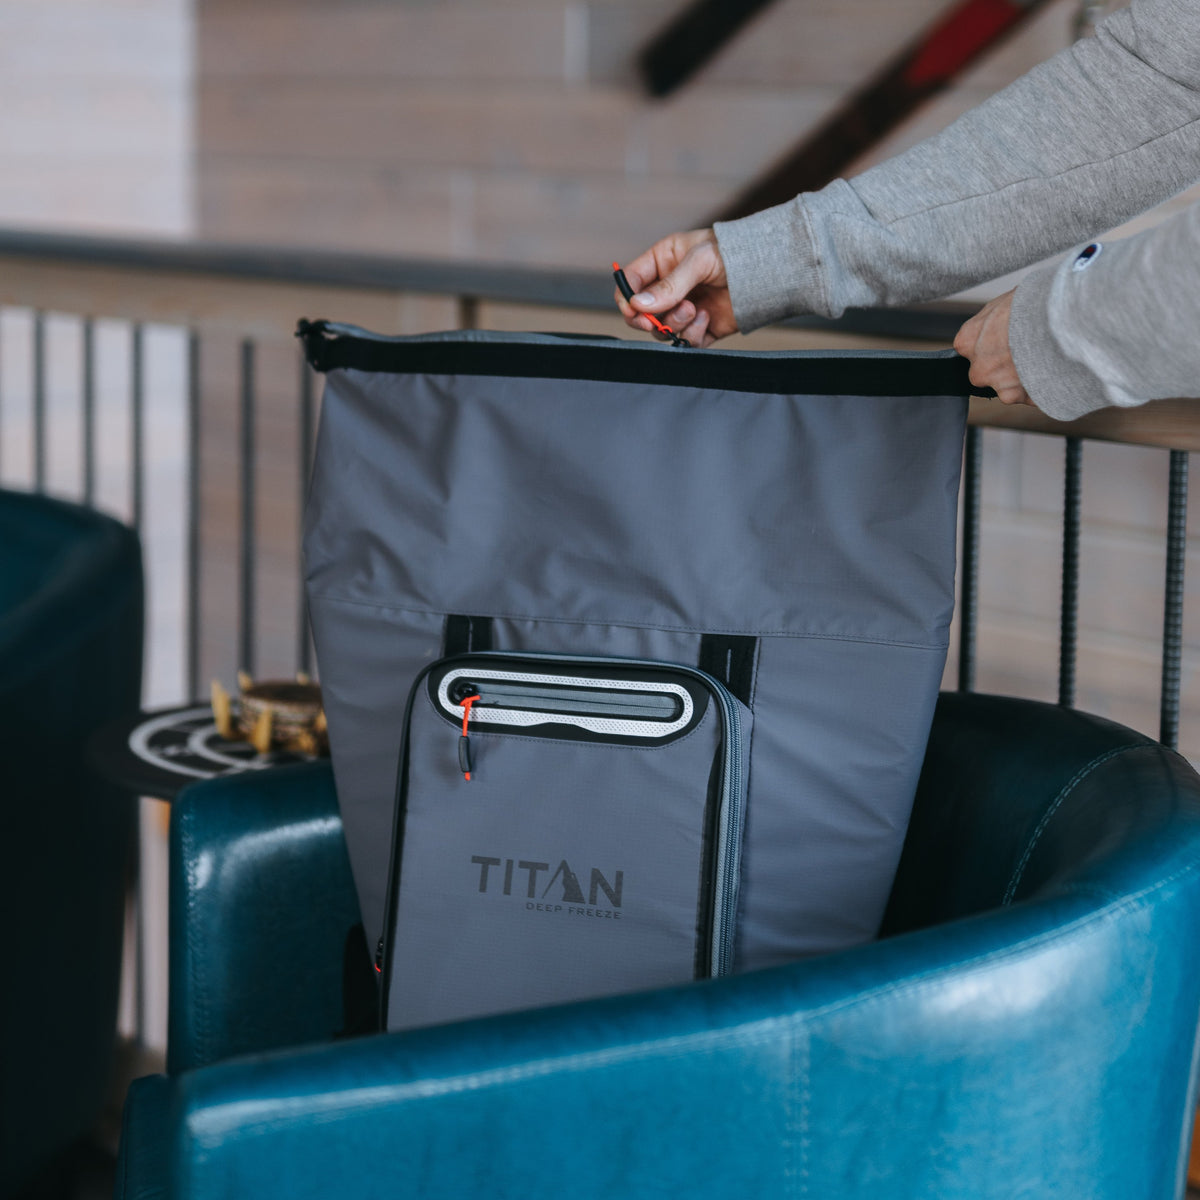 Titan Deep Freeze® 20 Can Rolltop Backpack - Sharkskin Gray - Lifestyle, model packing cooler